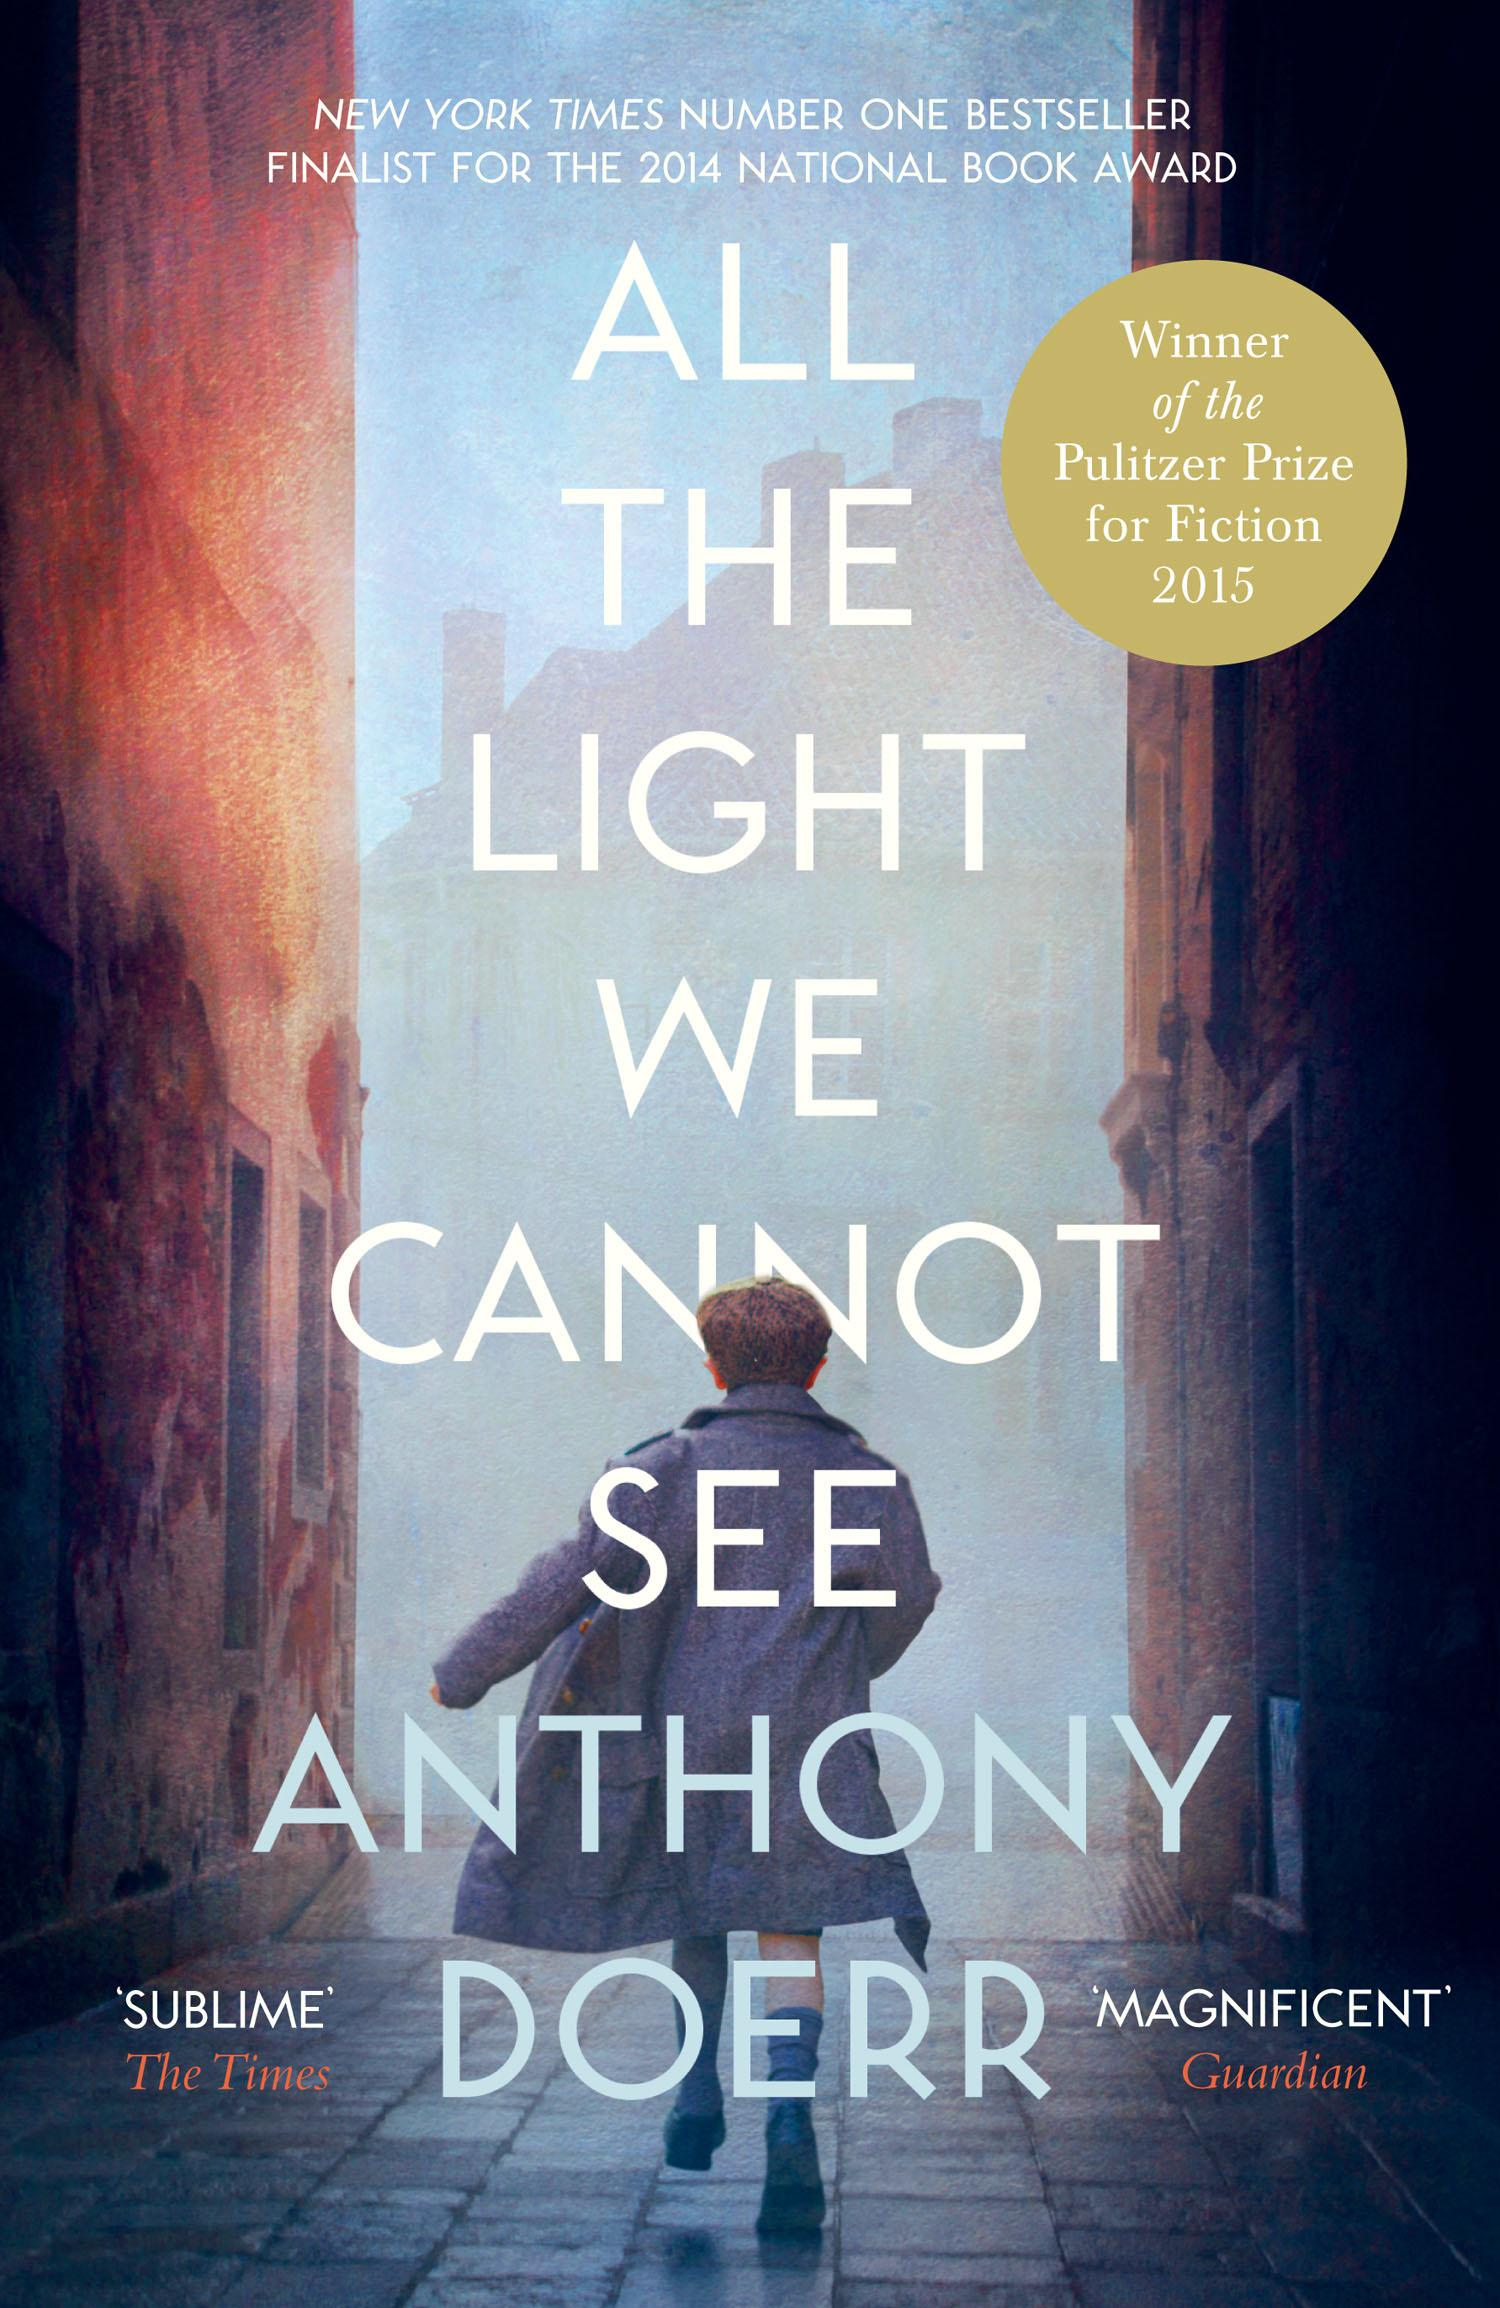 All The Light We Cannot See  Anthony Doerr  Taschenbuch  Englisch  2015